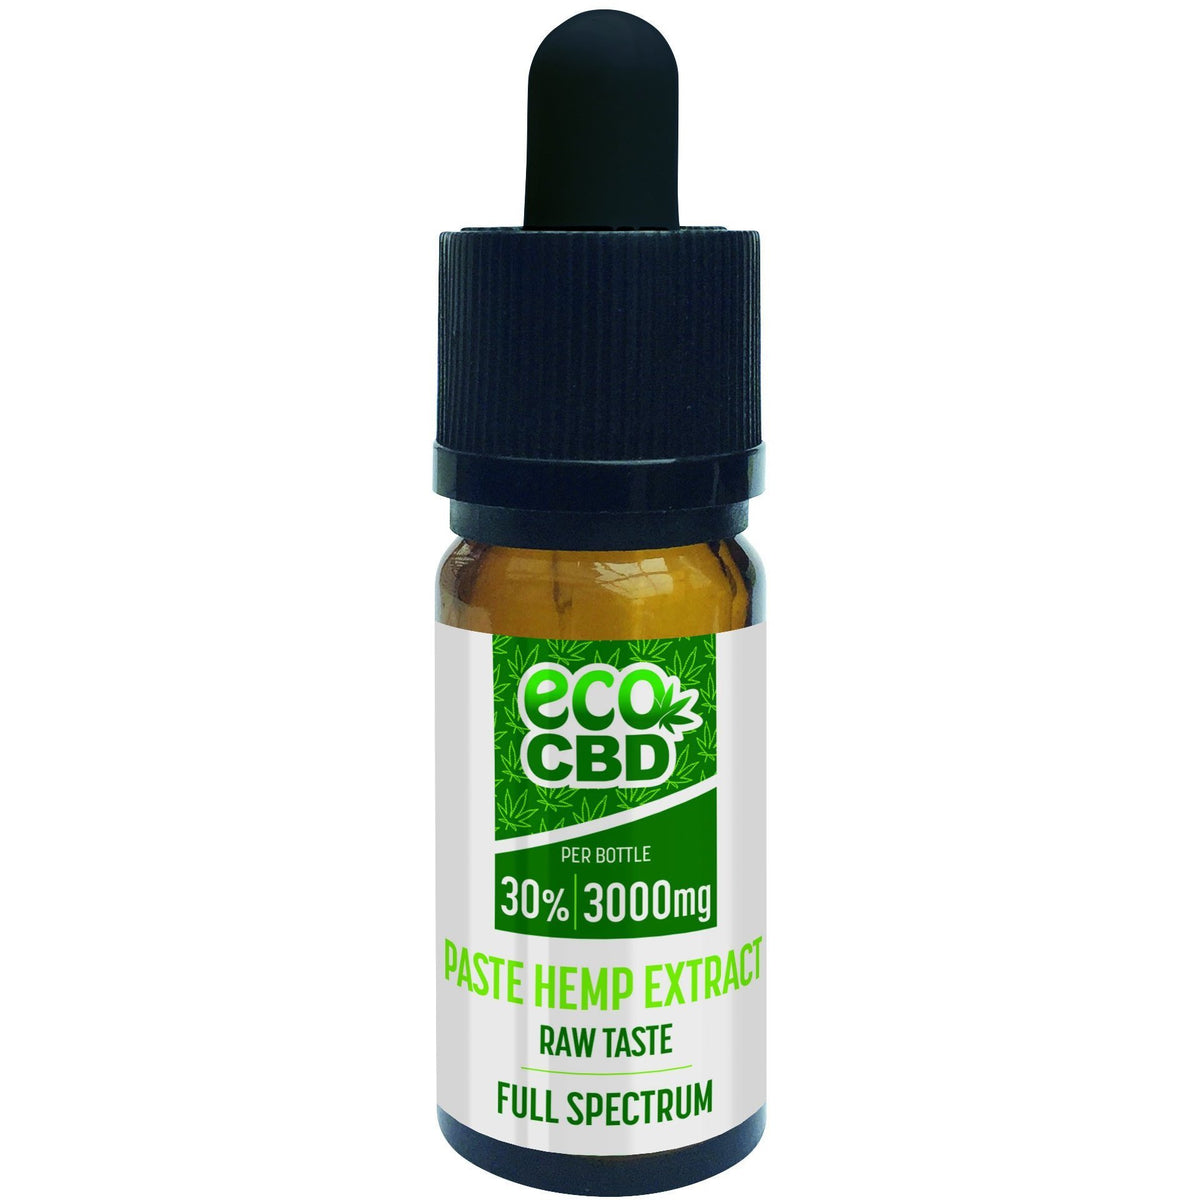 CBD Paste Hemp Extract Full Spectrum - Inspired Life CBD